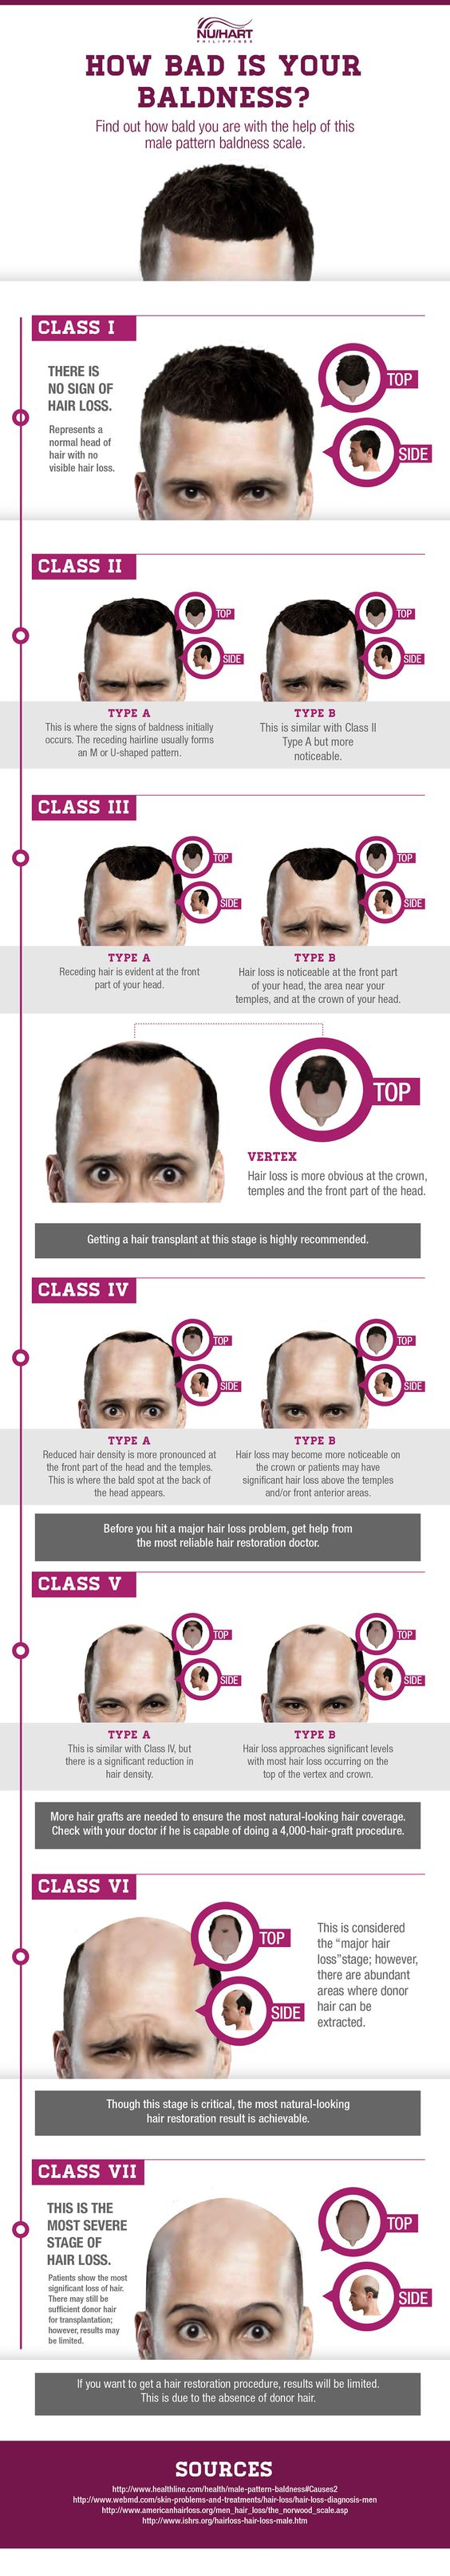 Stages of Male Pattern Baldness - Hair Loss Chart Infographic #men #medical #aging